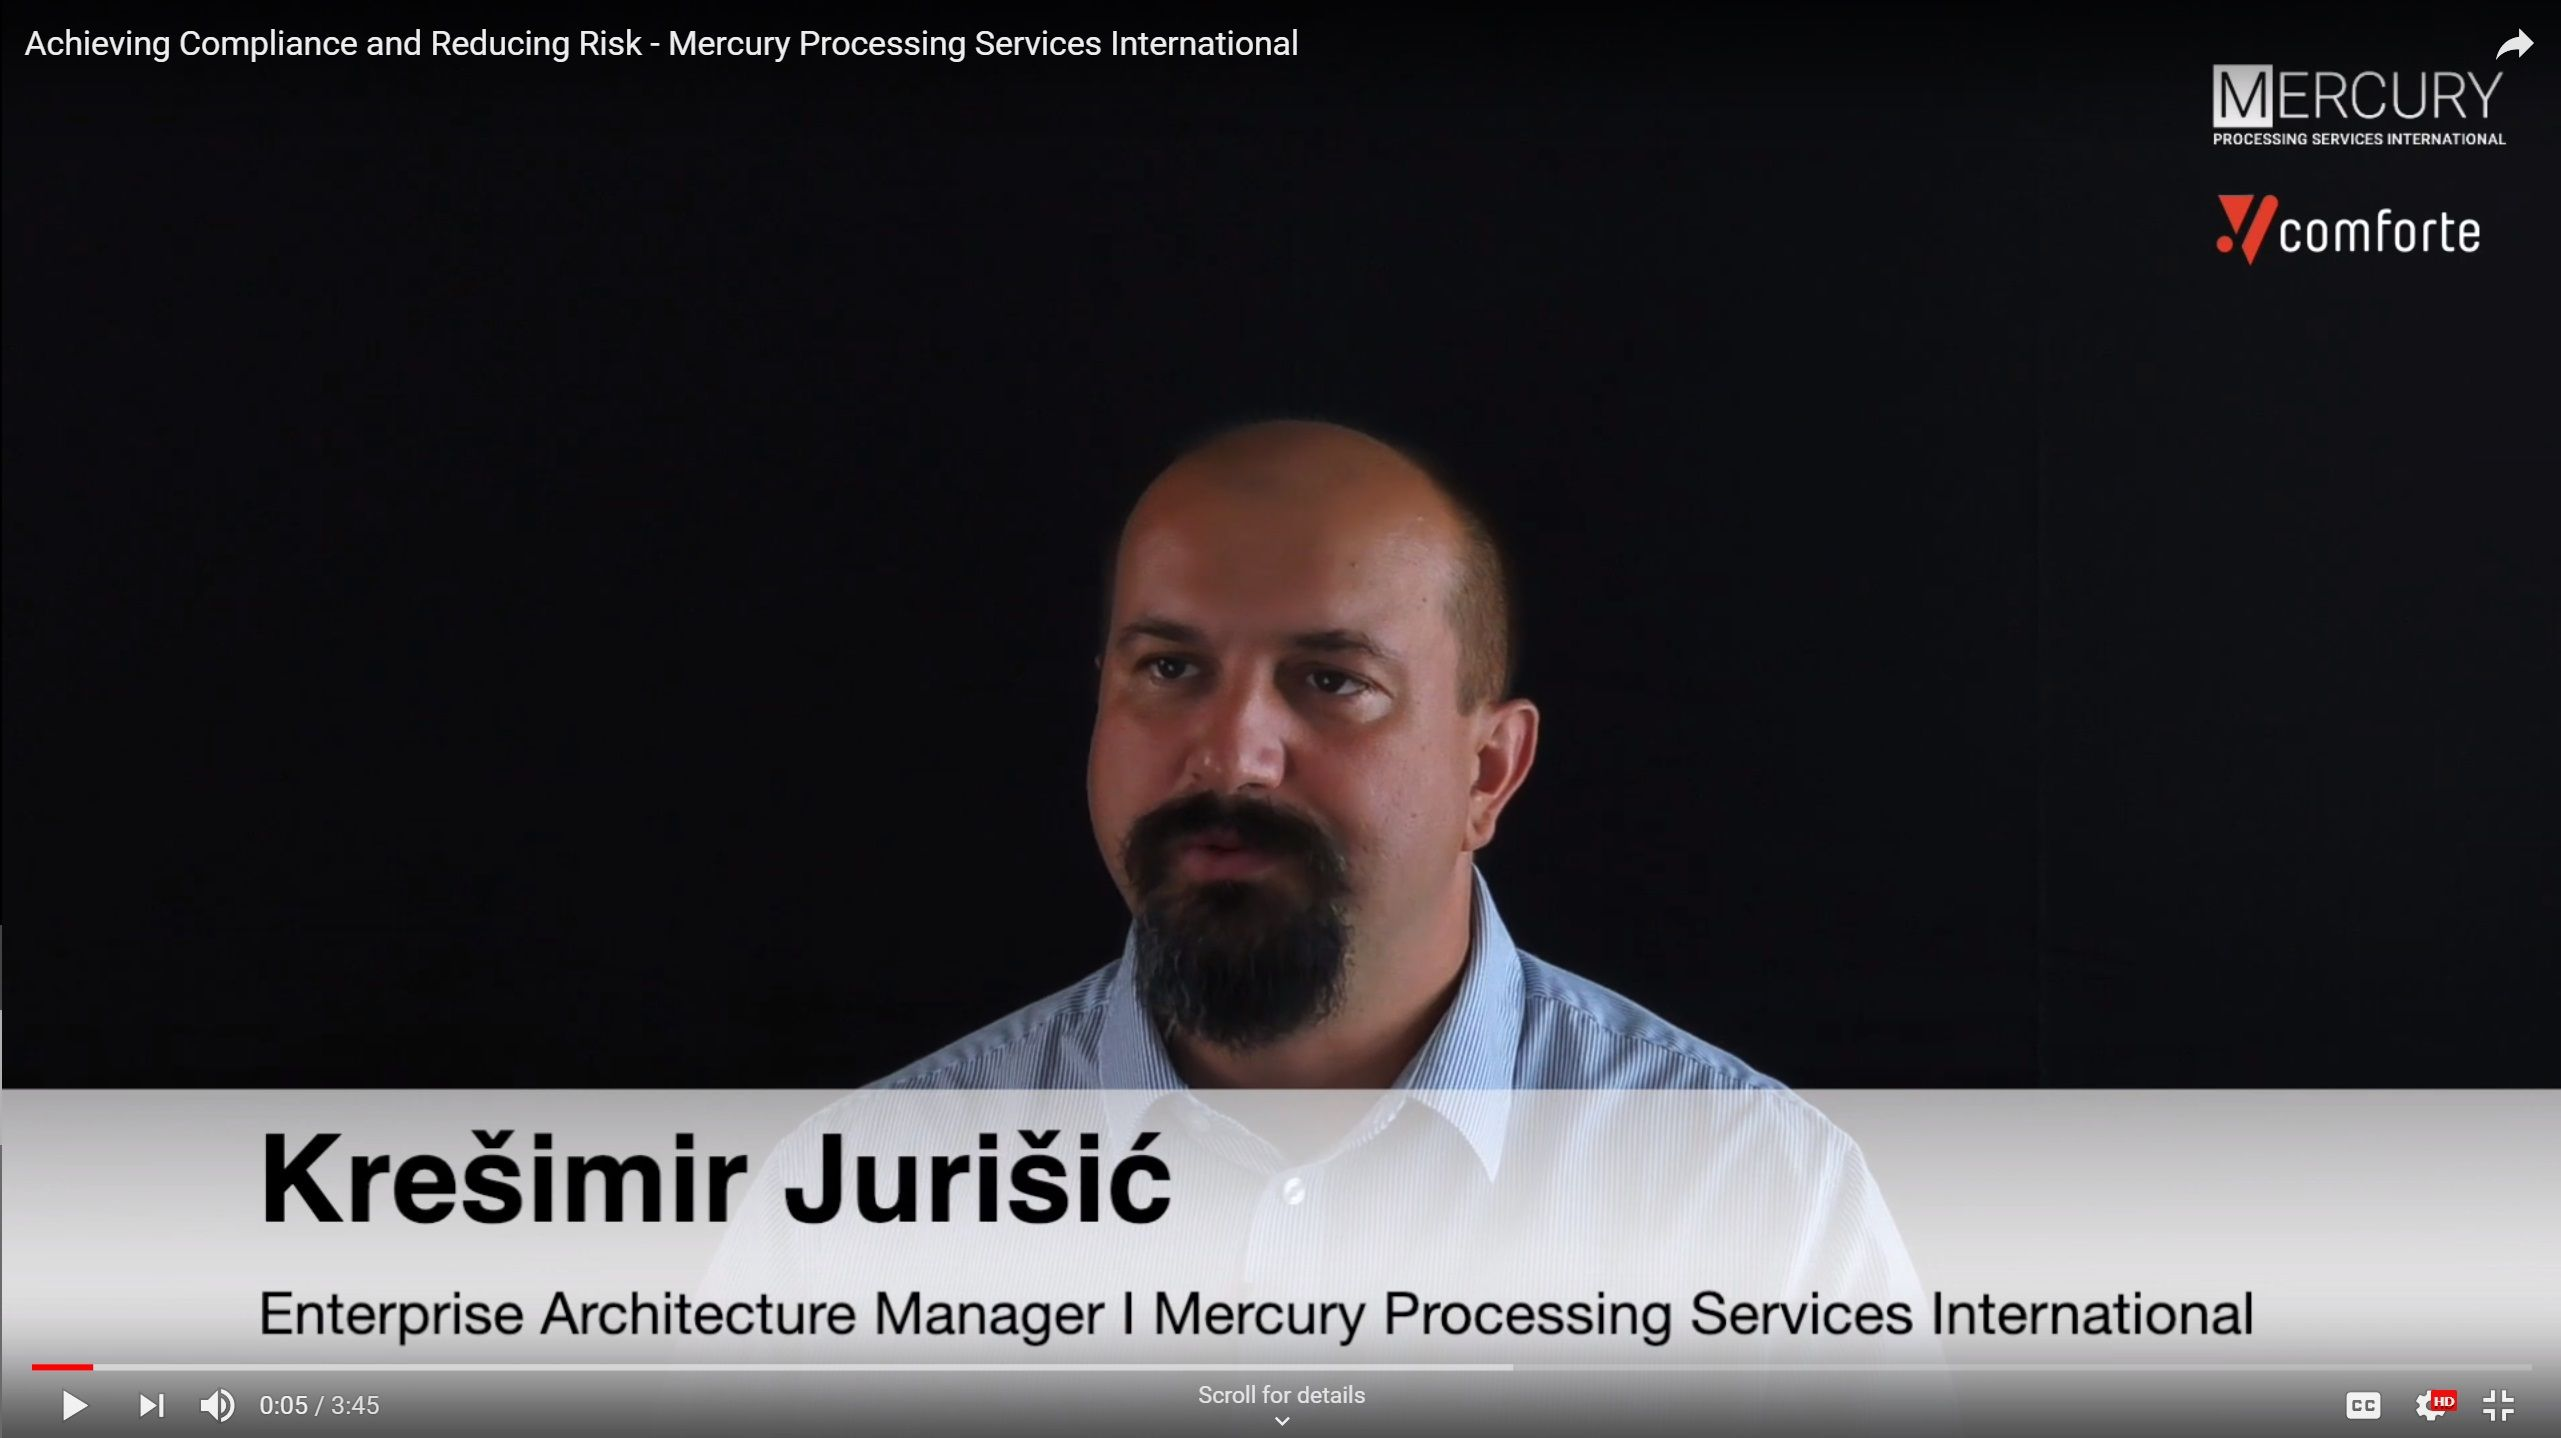 Video: Achieving Compliance and Reducing Risk - Mercury Processing Services International